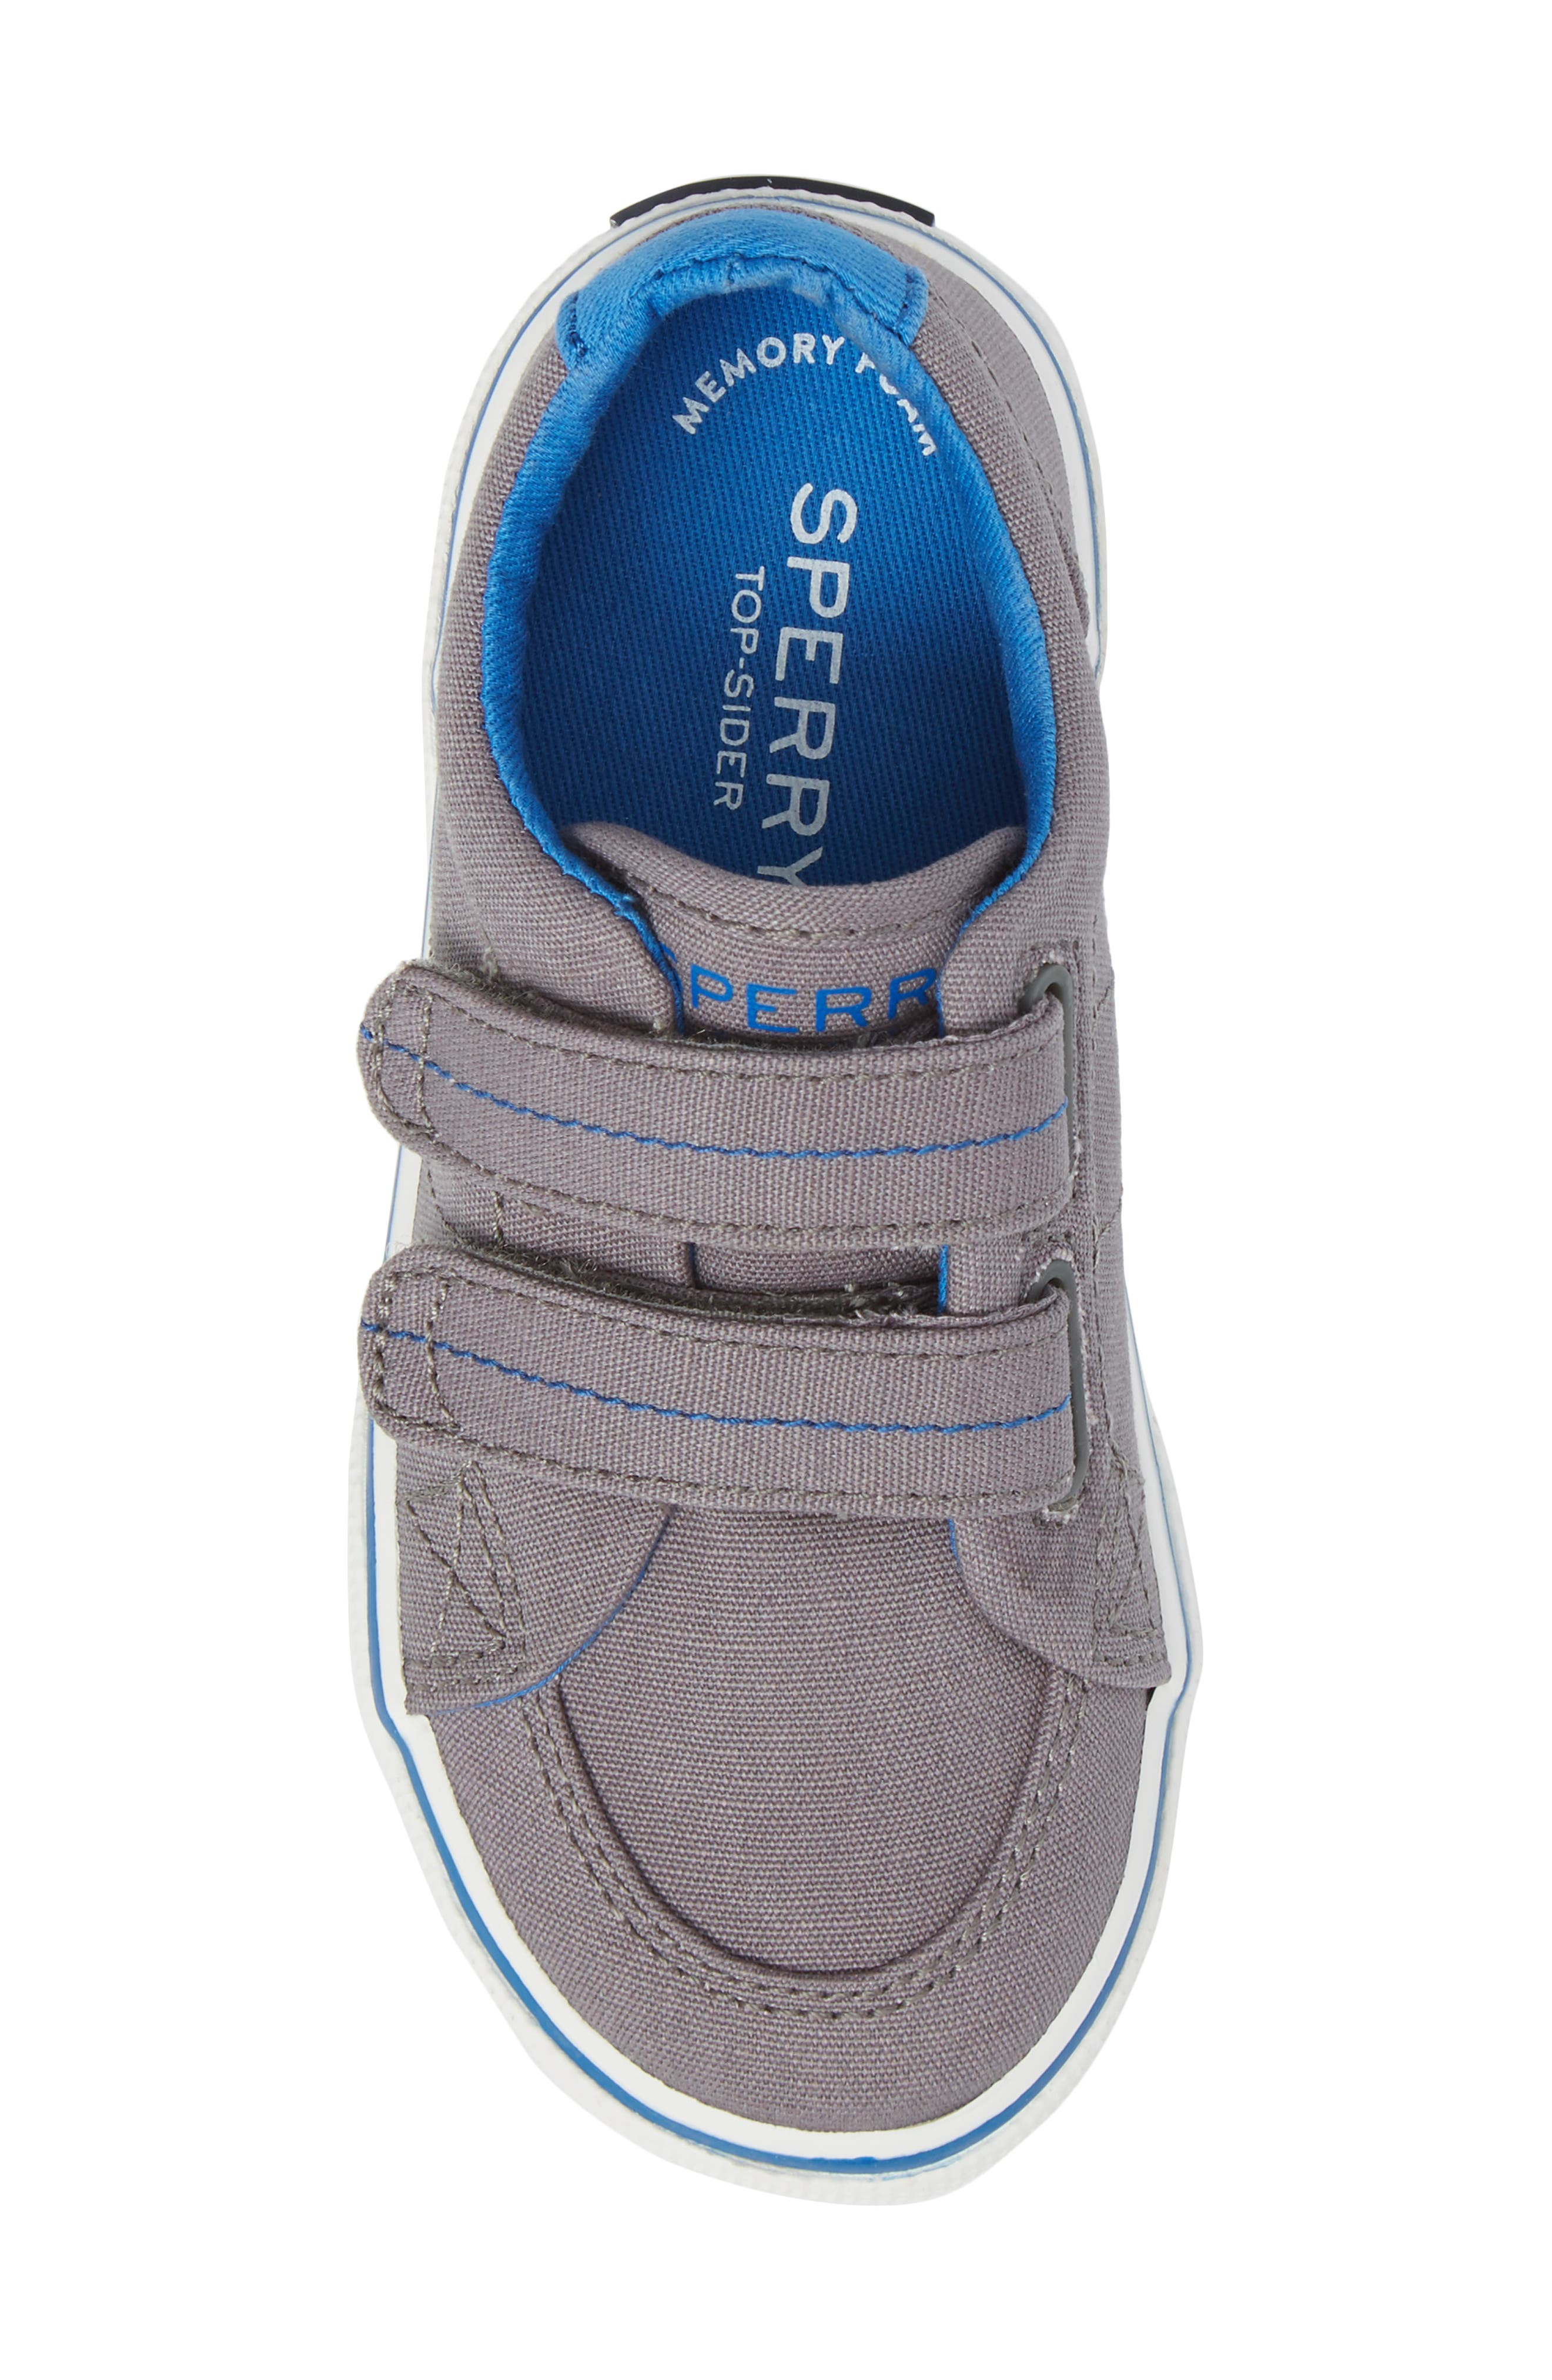 Sperry Top-Sider<sup>®</sup> Kids 'Halyard' Sneaker,                             Alternate thumbnail 21, color,